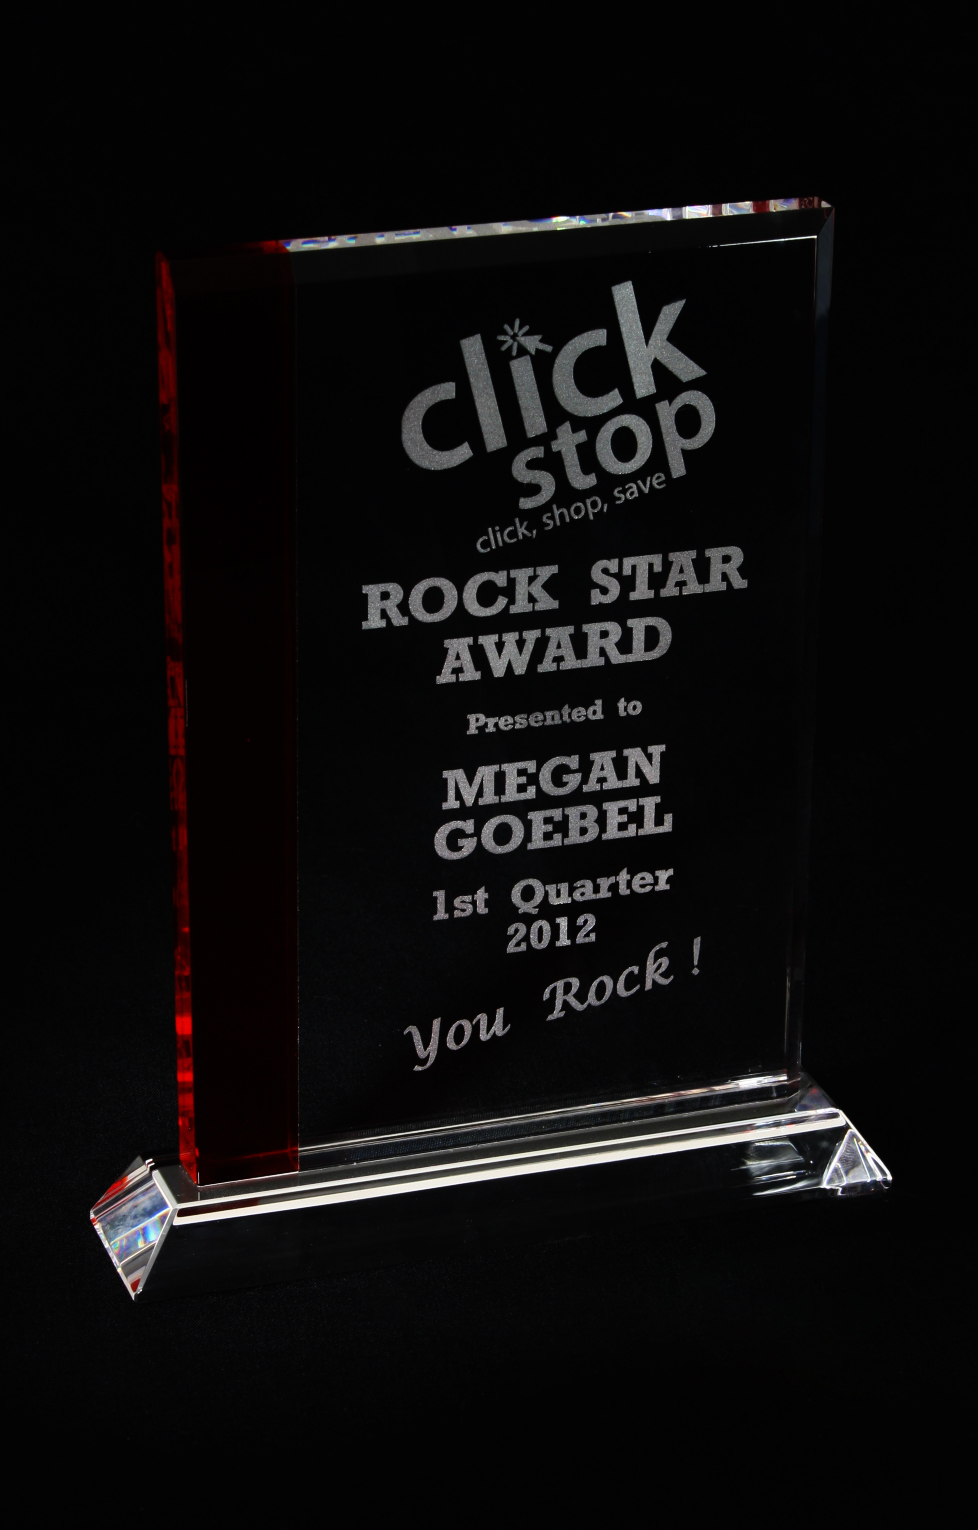 Clickstop's Rock Star Award